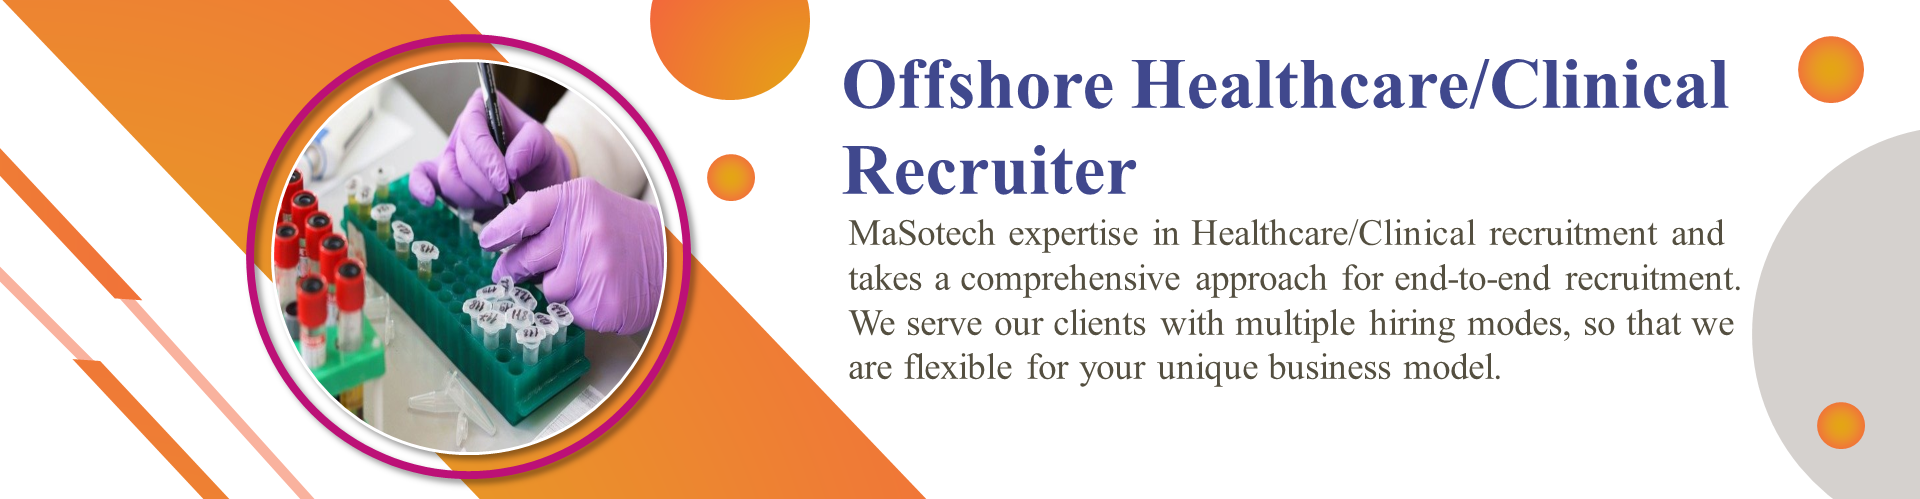 Offshore Healthcare/Clinical Recruiter